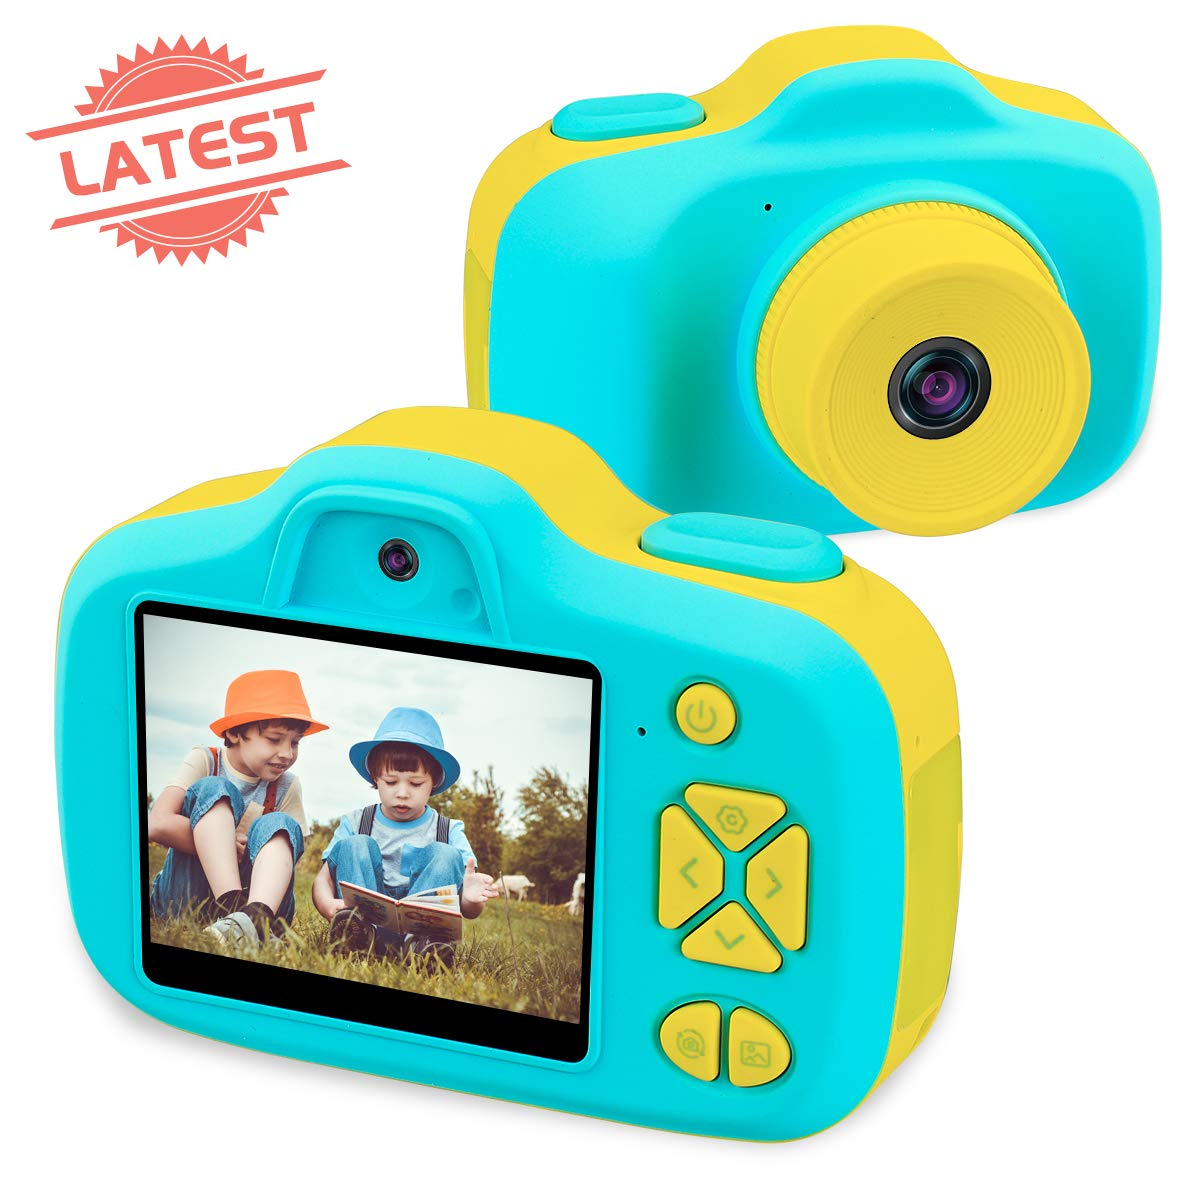 Joytrip Kids Digital Cameras for Boys Girls Gifts HD 2.3 Inches Screen 8.0MP Video Camera for Kids Shockproof Children Selfie Toy Mini Camera Camcorder Child for Age 3-14 (Blue-No SD Card) by Joytrip (Image #1)